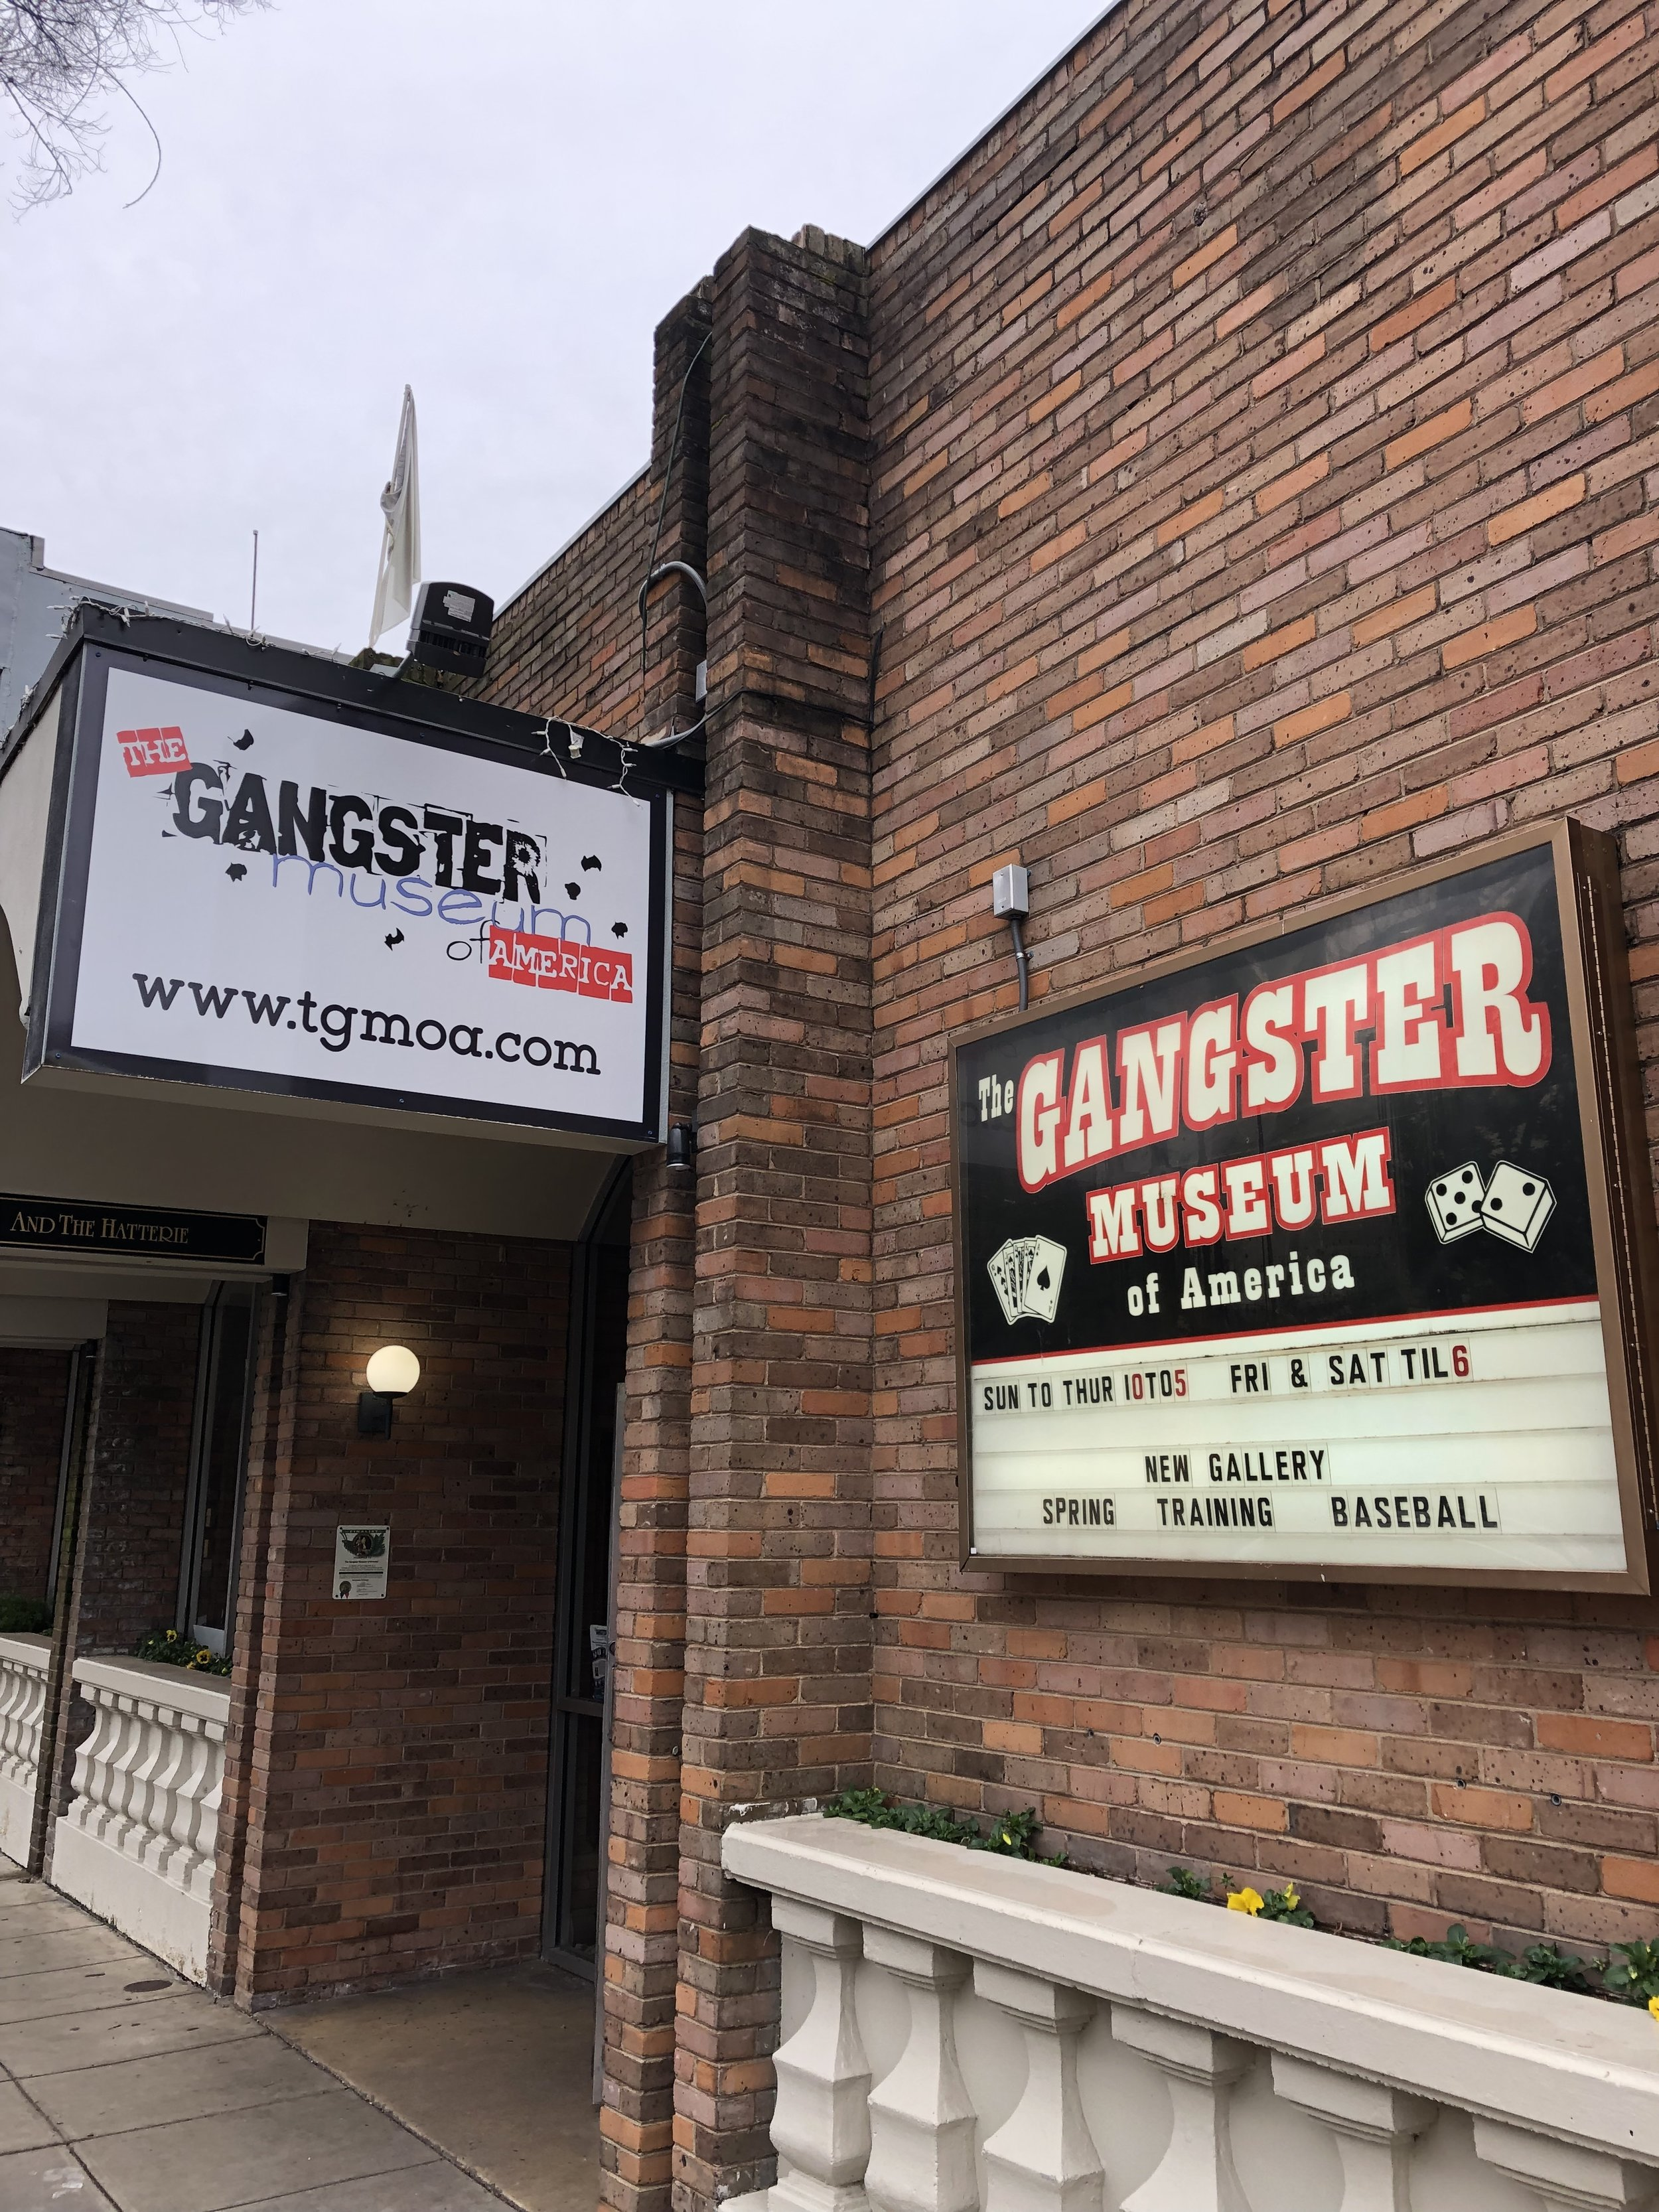 The Gangster Museum of America, Things to do in Hot Springs, Arkansas via Weekend Trips From Nashville